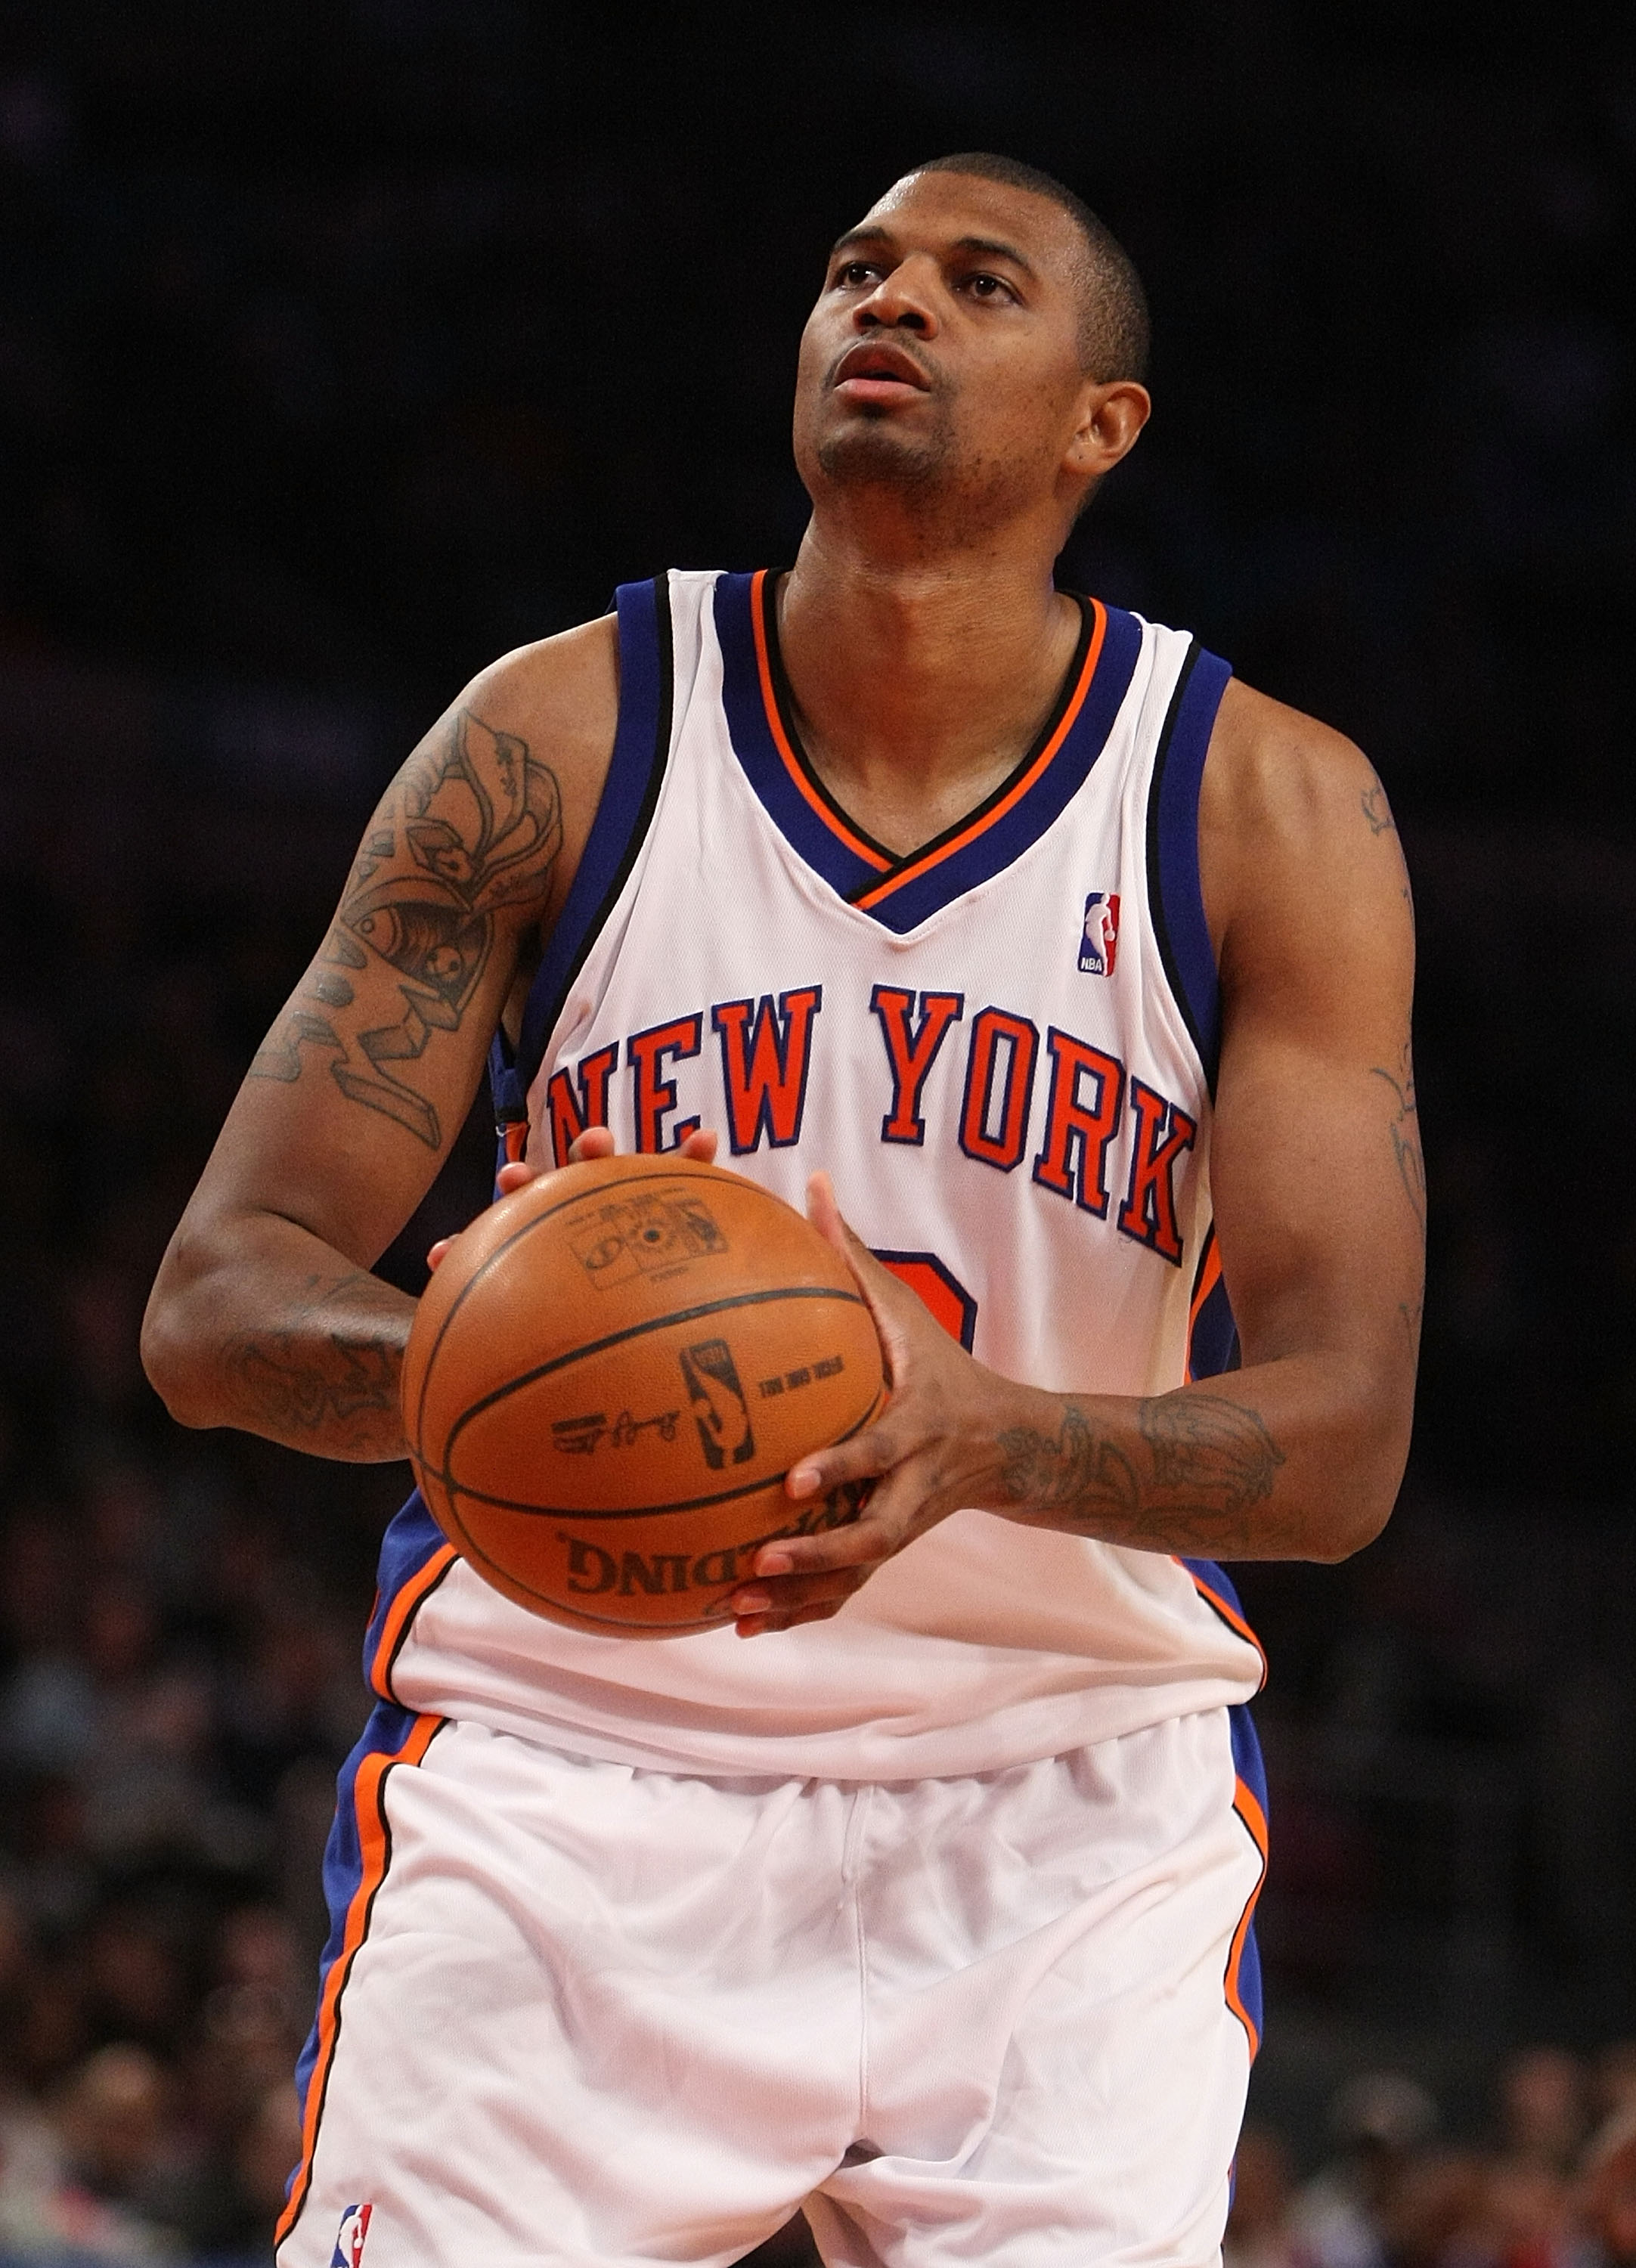 NEW YORK - DECEMBER 18: Jonathan Bender #9 of the New York Knicks shoots a free throw against the Los Angeles Clippers at Madison Square Garden on December 18, 2009 in New York City. NOTE TO USER: User expressly acknowledges and agrees that, by downloadin